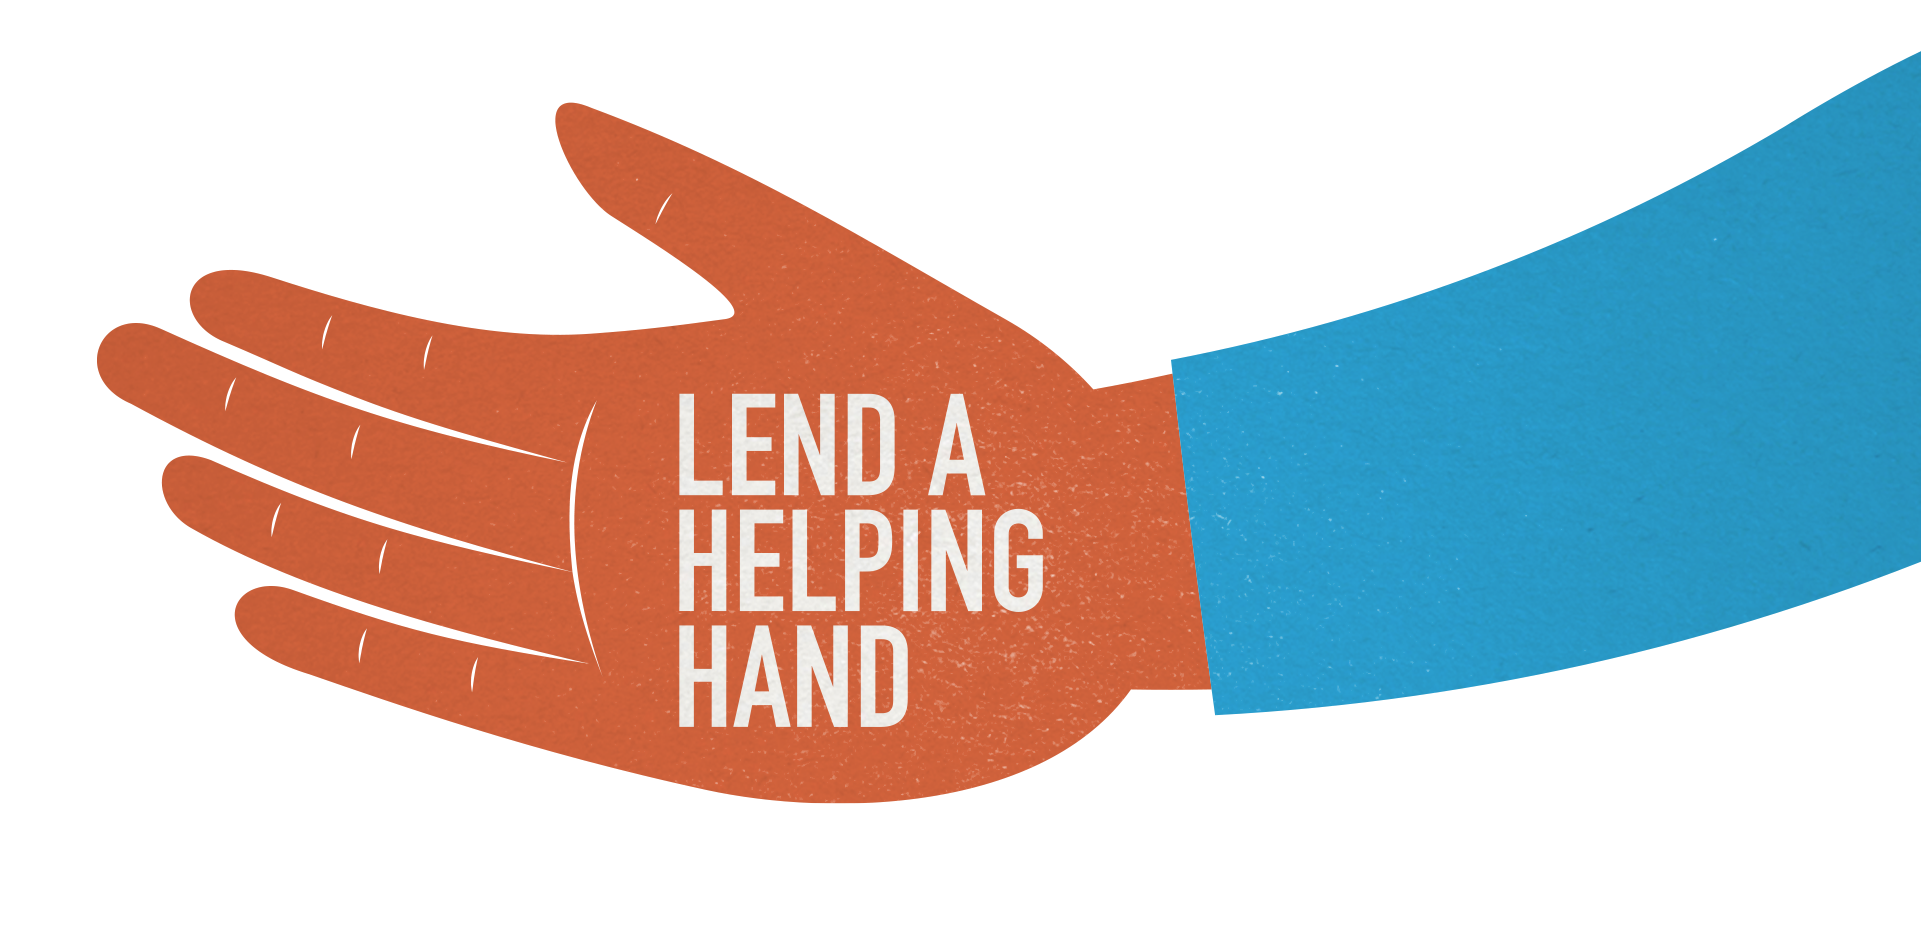 Helping hand png. Lend a transparent images